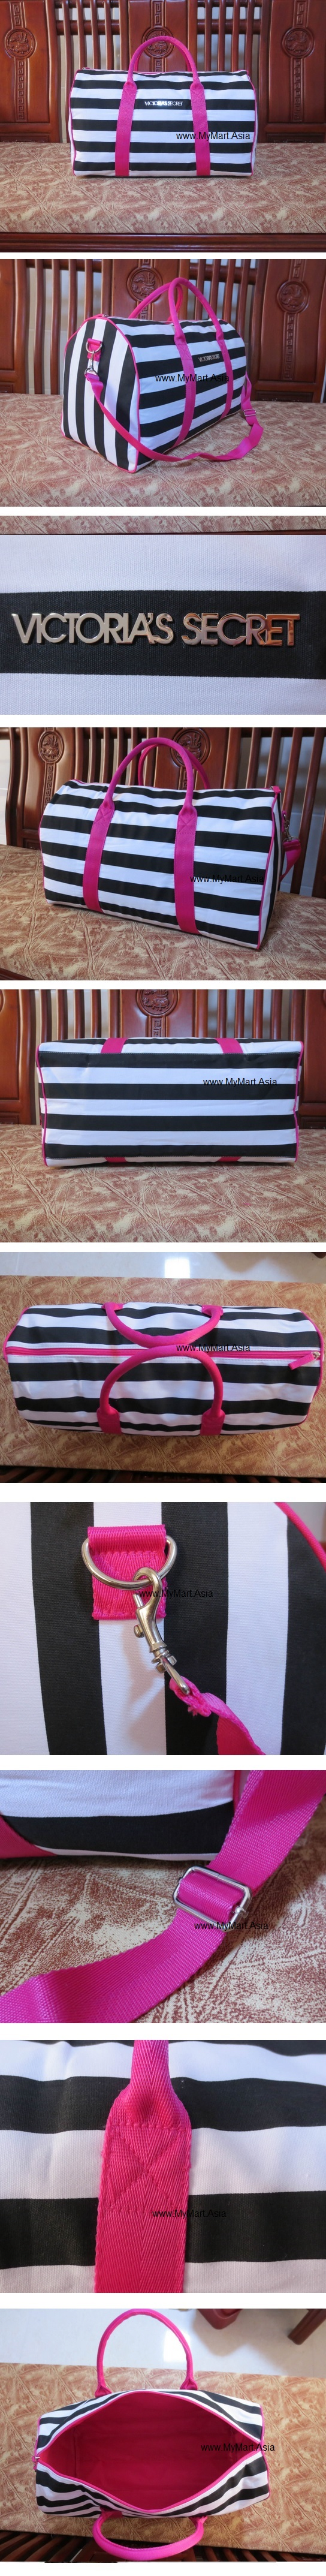 Victoria Secret Zebra Strip Big Traveling Bag